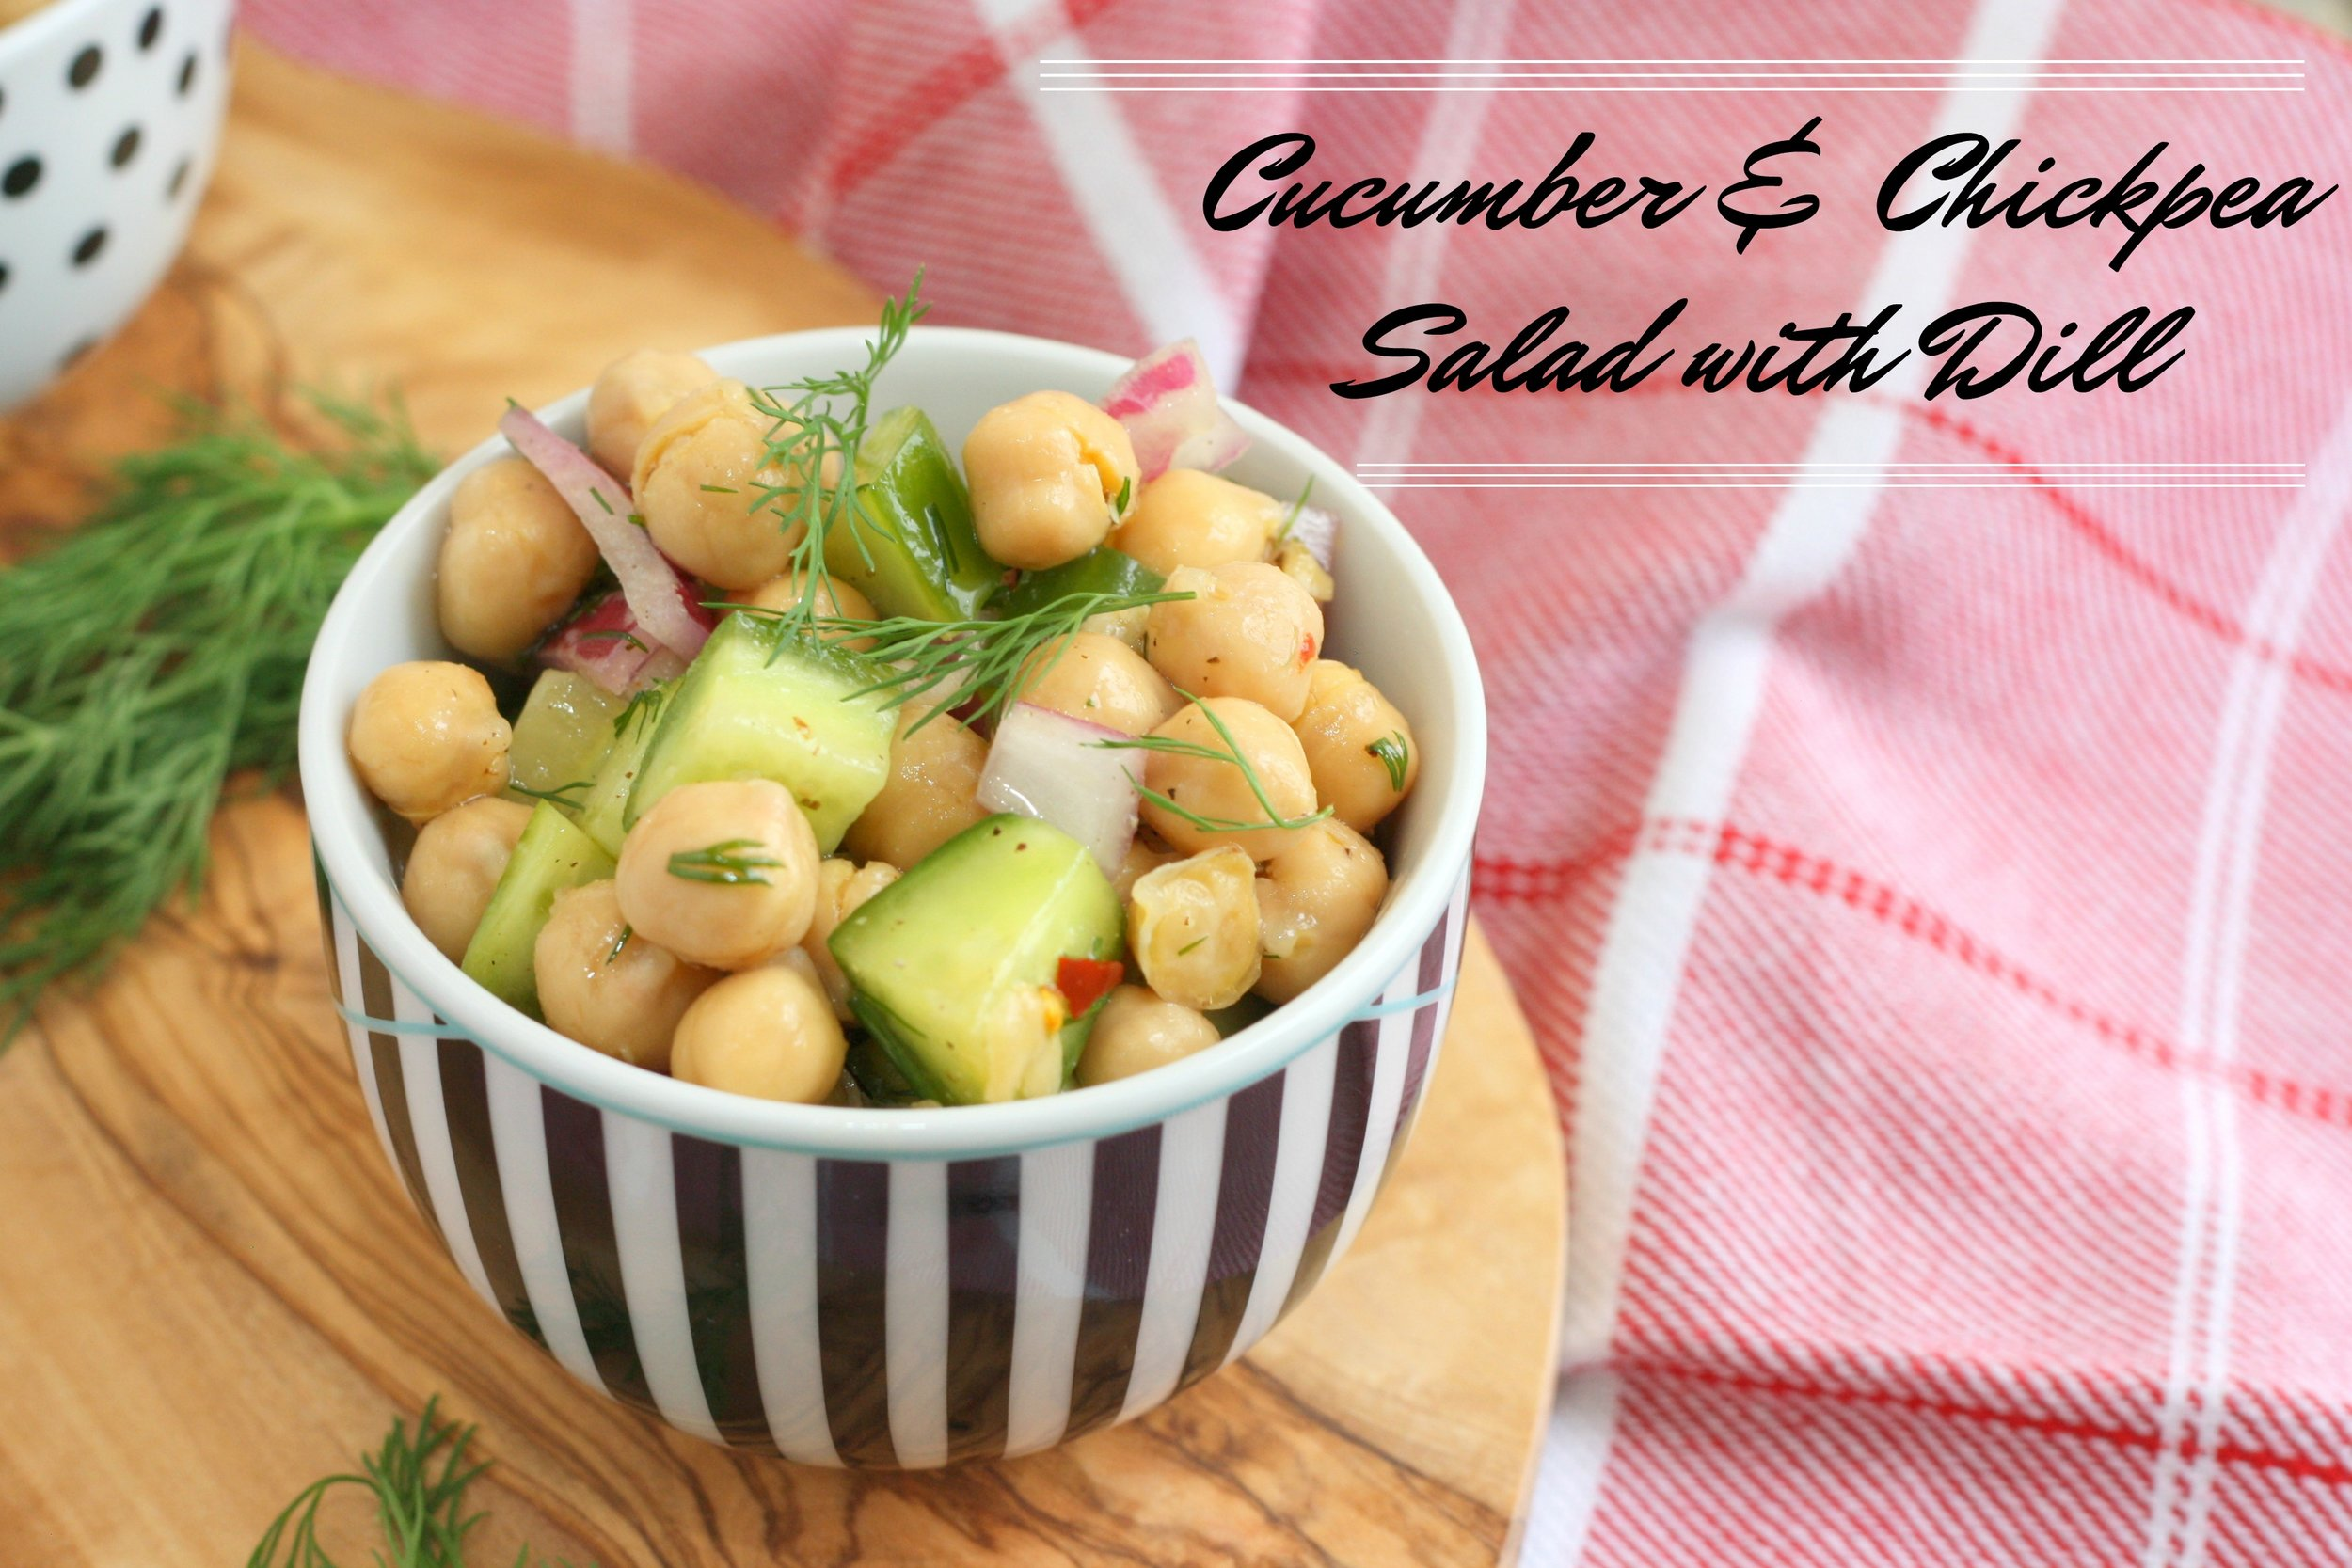 Cucumber & Chickpea Salad with Dill5-1-text.jpg